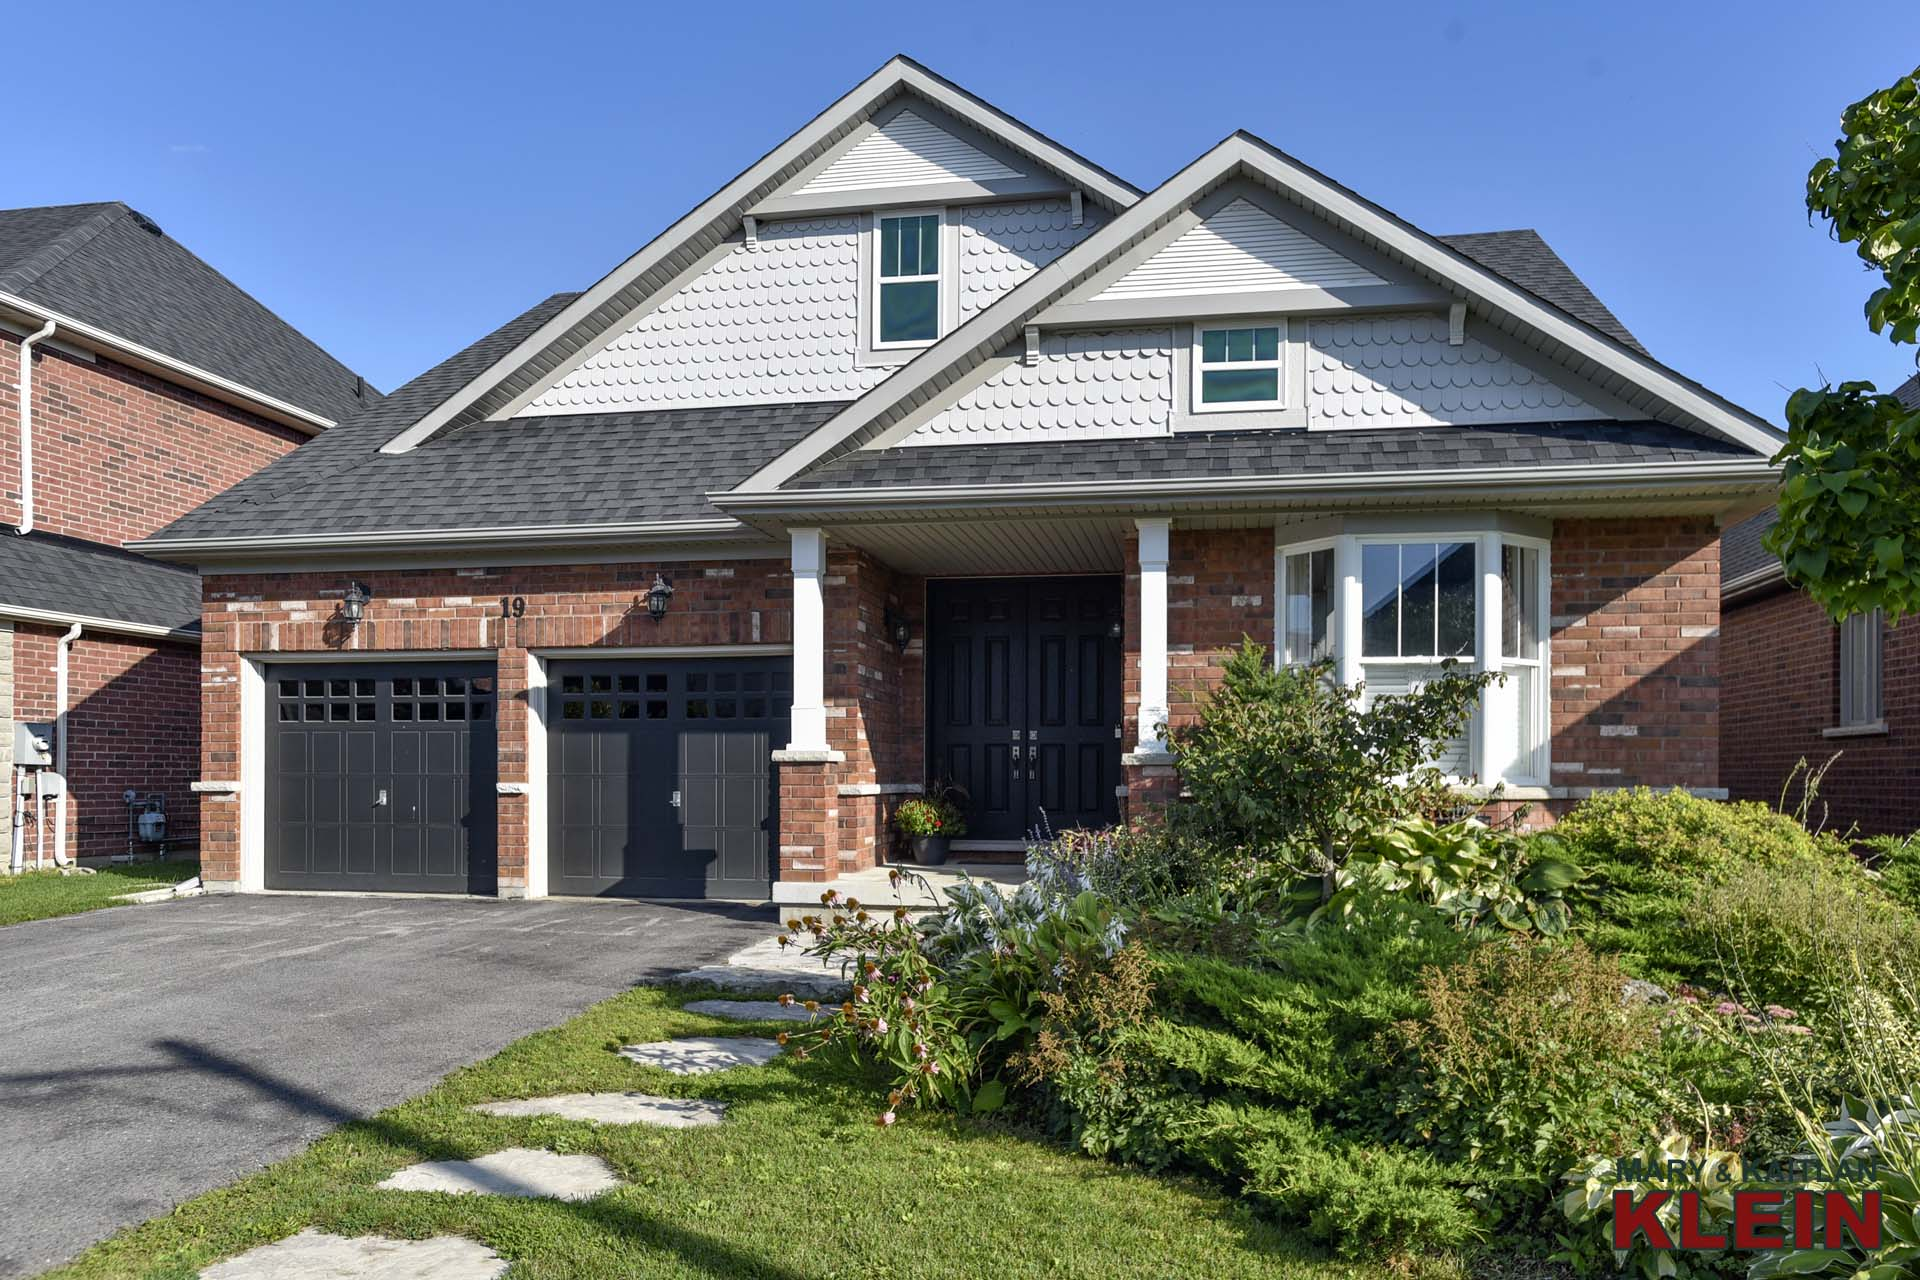 3 bedroom bungaloft for sale in caledon east with pool, kait klein, mary klein